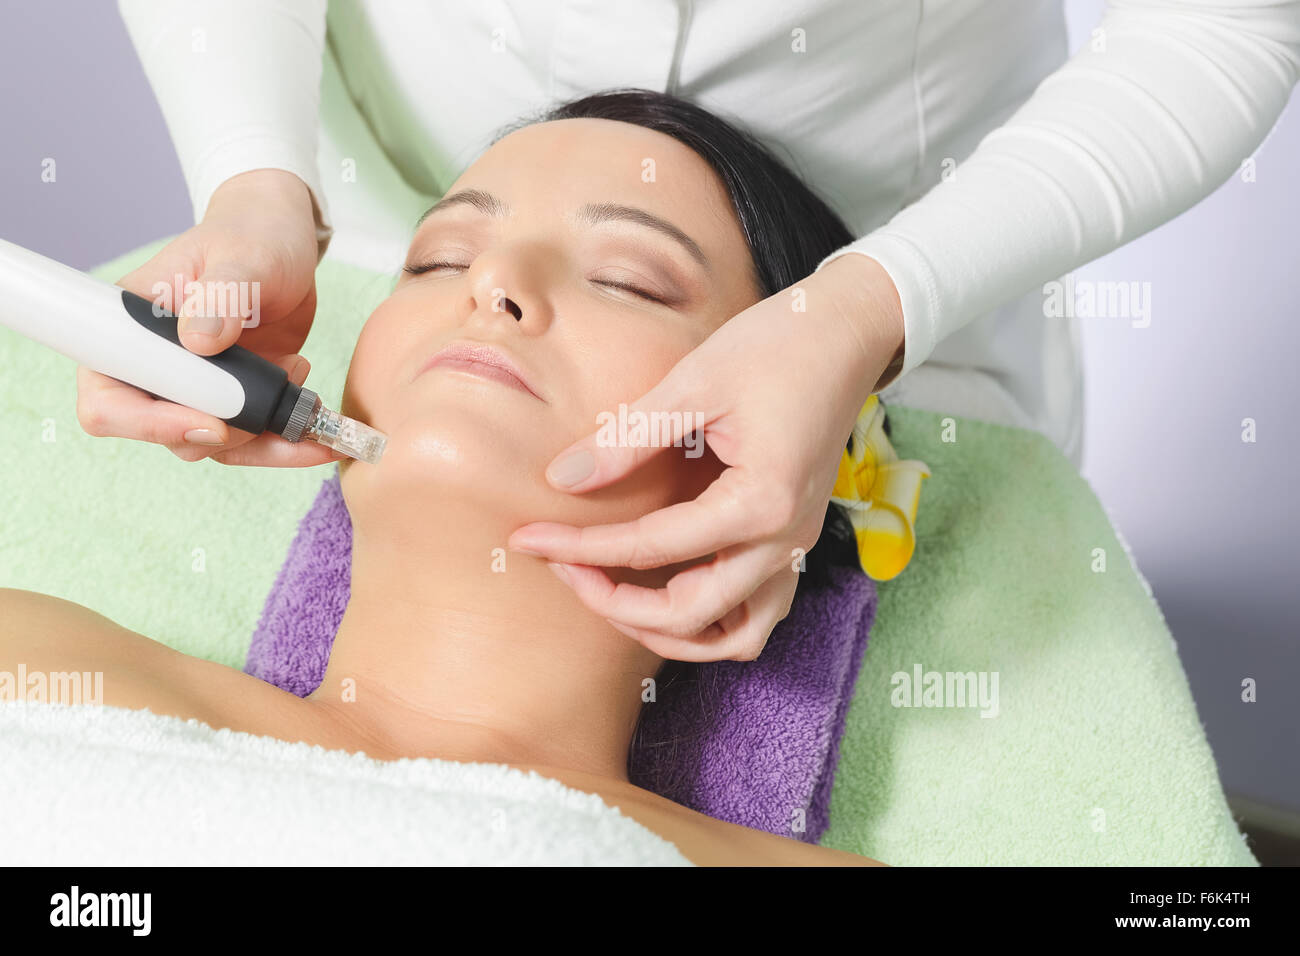 Mesotherapy, anti ageing treatment. Woman having mesotherapy facial treatment at beauty salon - Stock Image